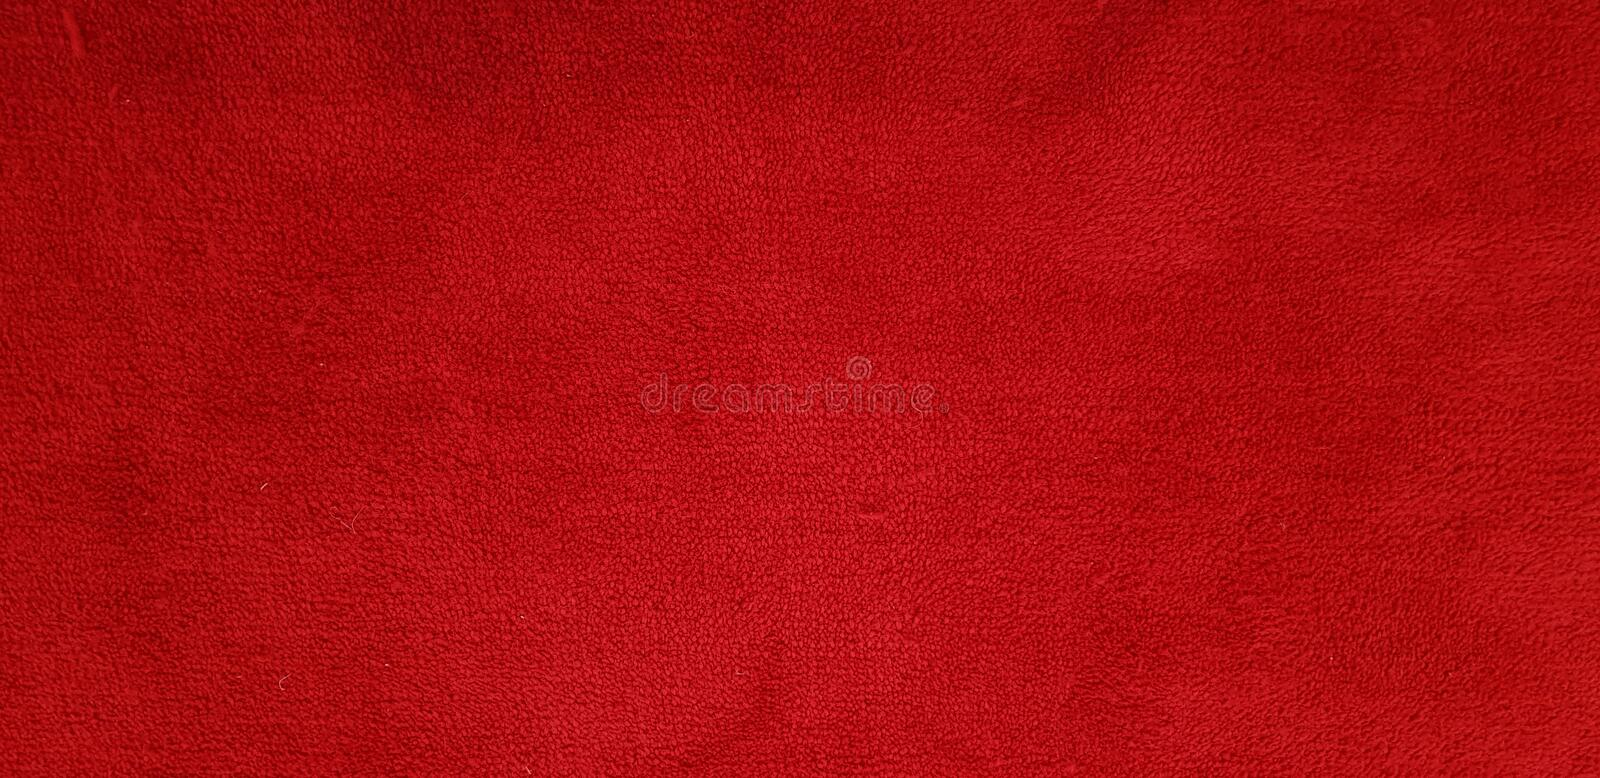 Red carpet texture and background detail stock photography